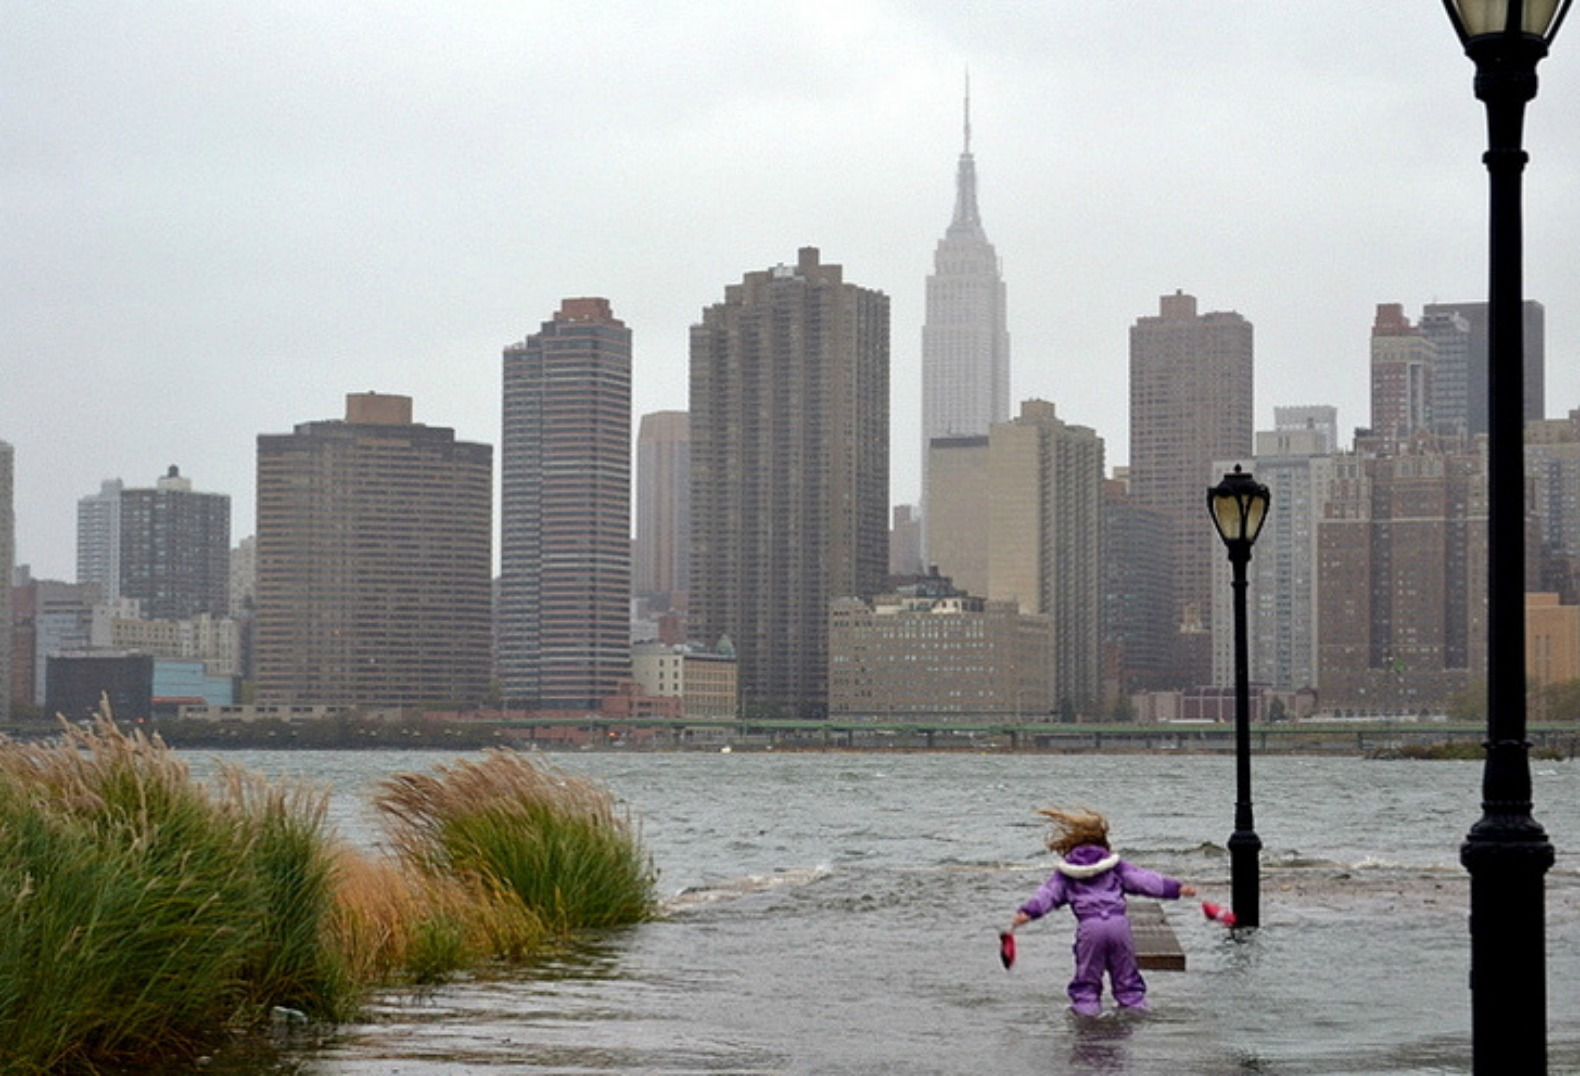 NYC could be under water in less than a century according to new climate change study